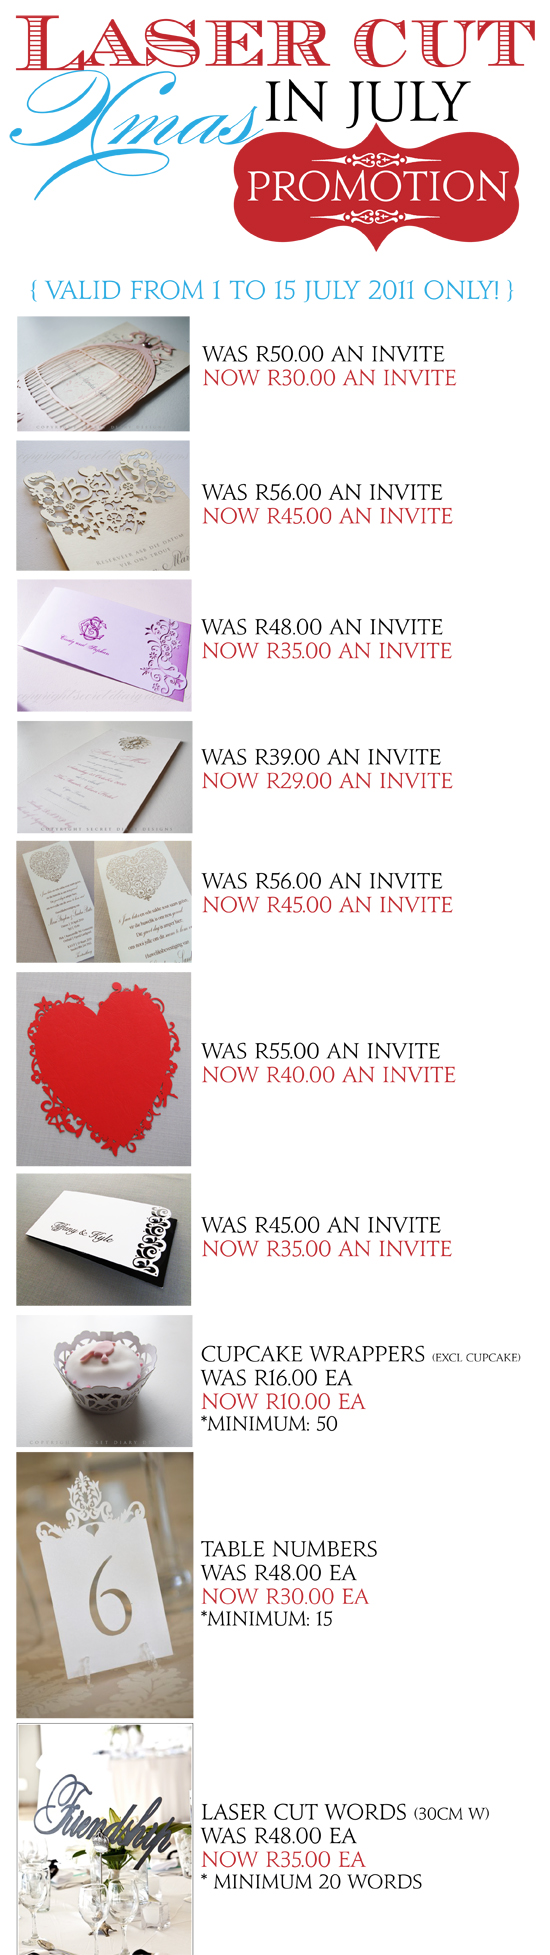 Laser-cut-invitations-specials